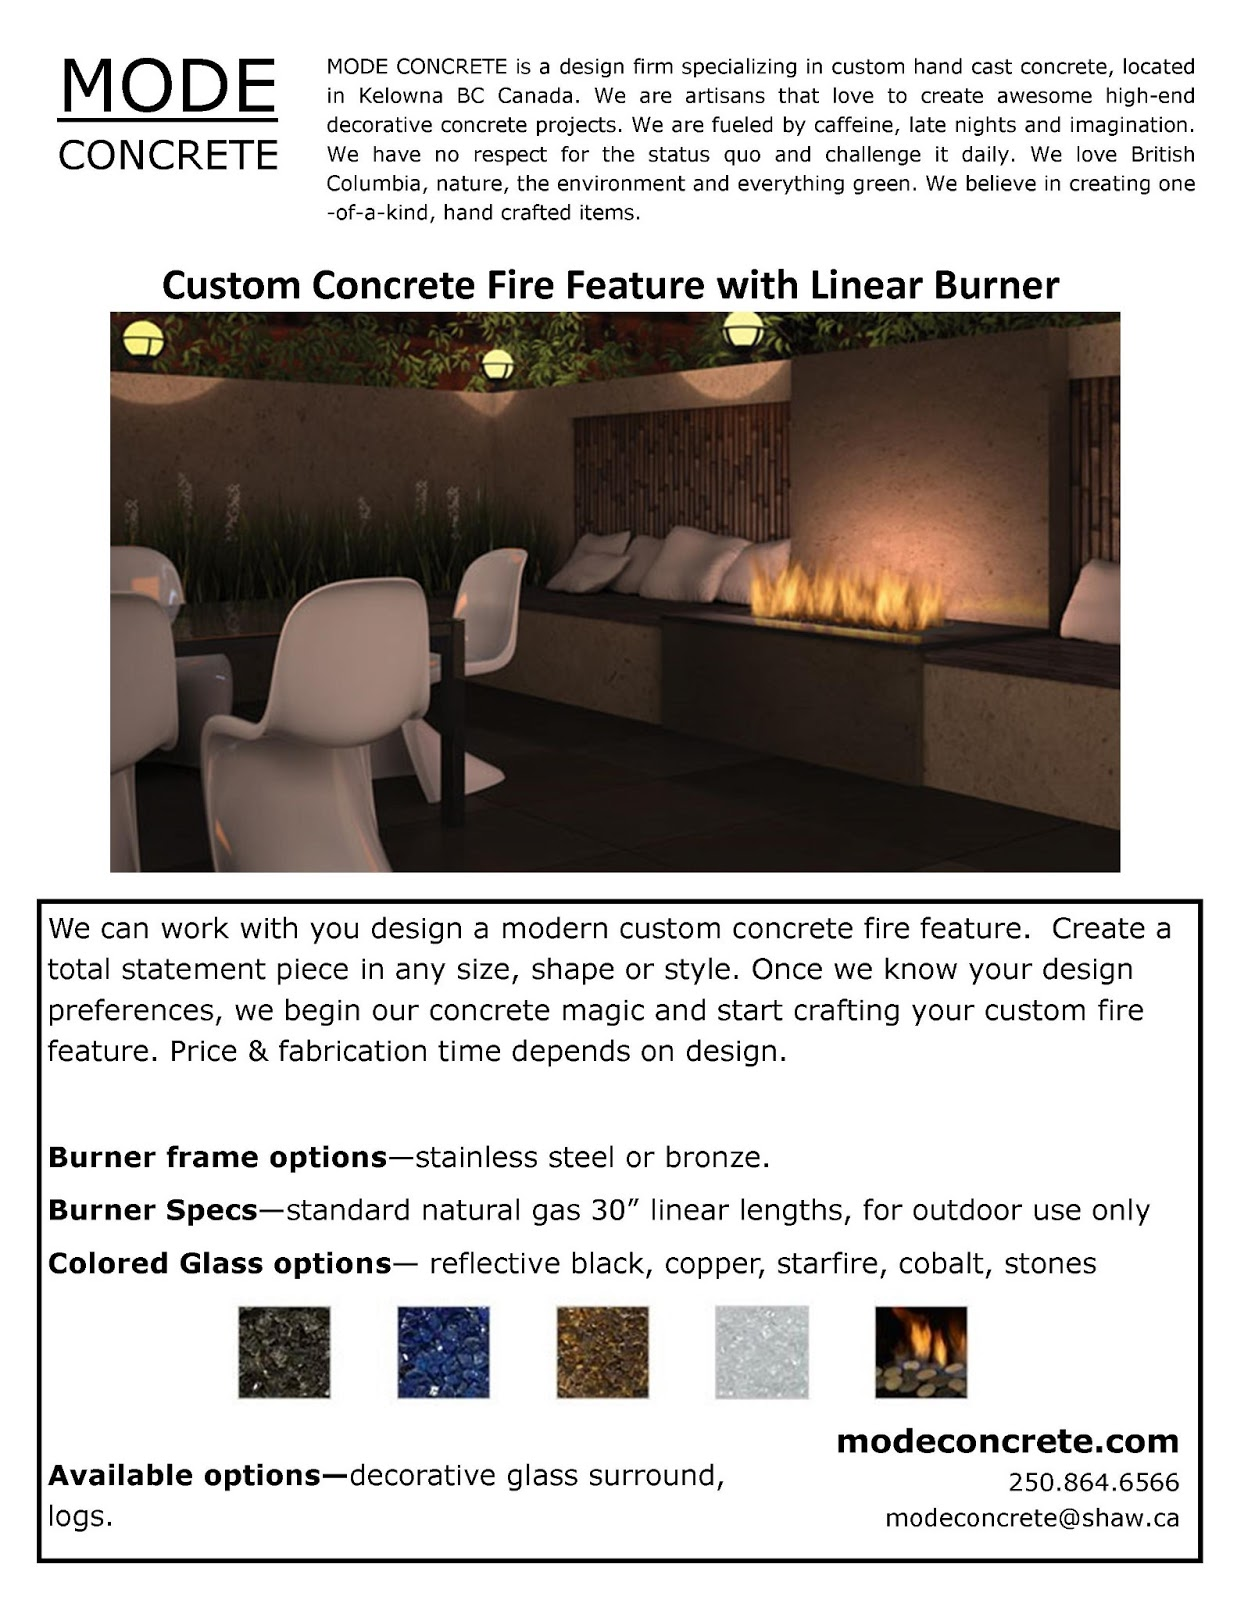 MODE CONCRETE: Outdoor Contemporary Concrete Fire Tables and Fire